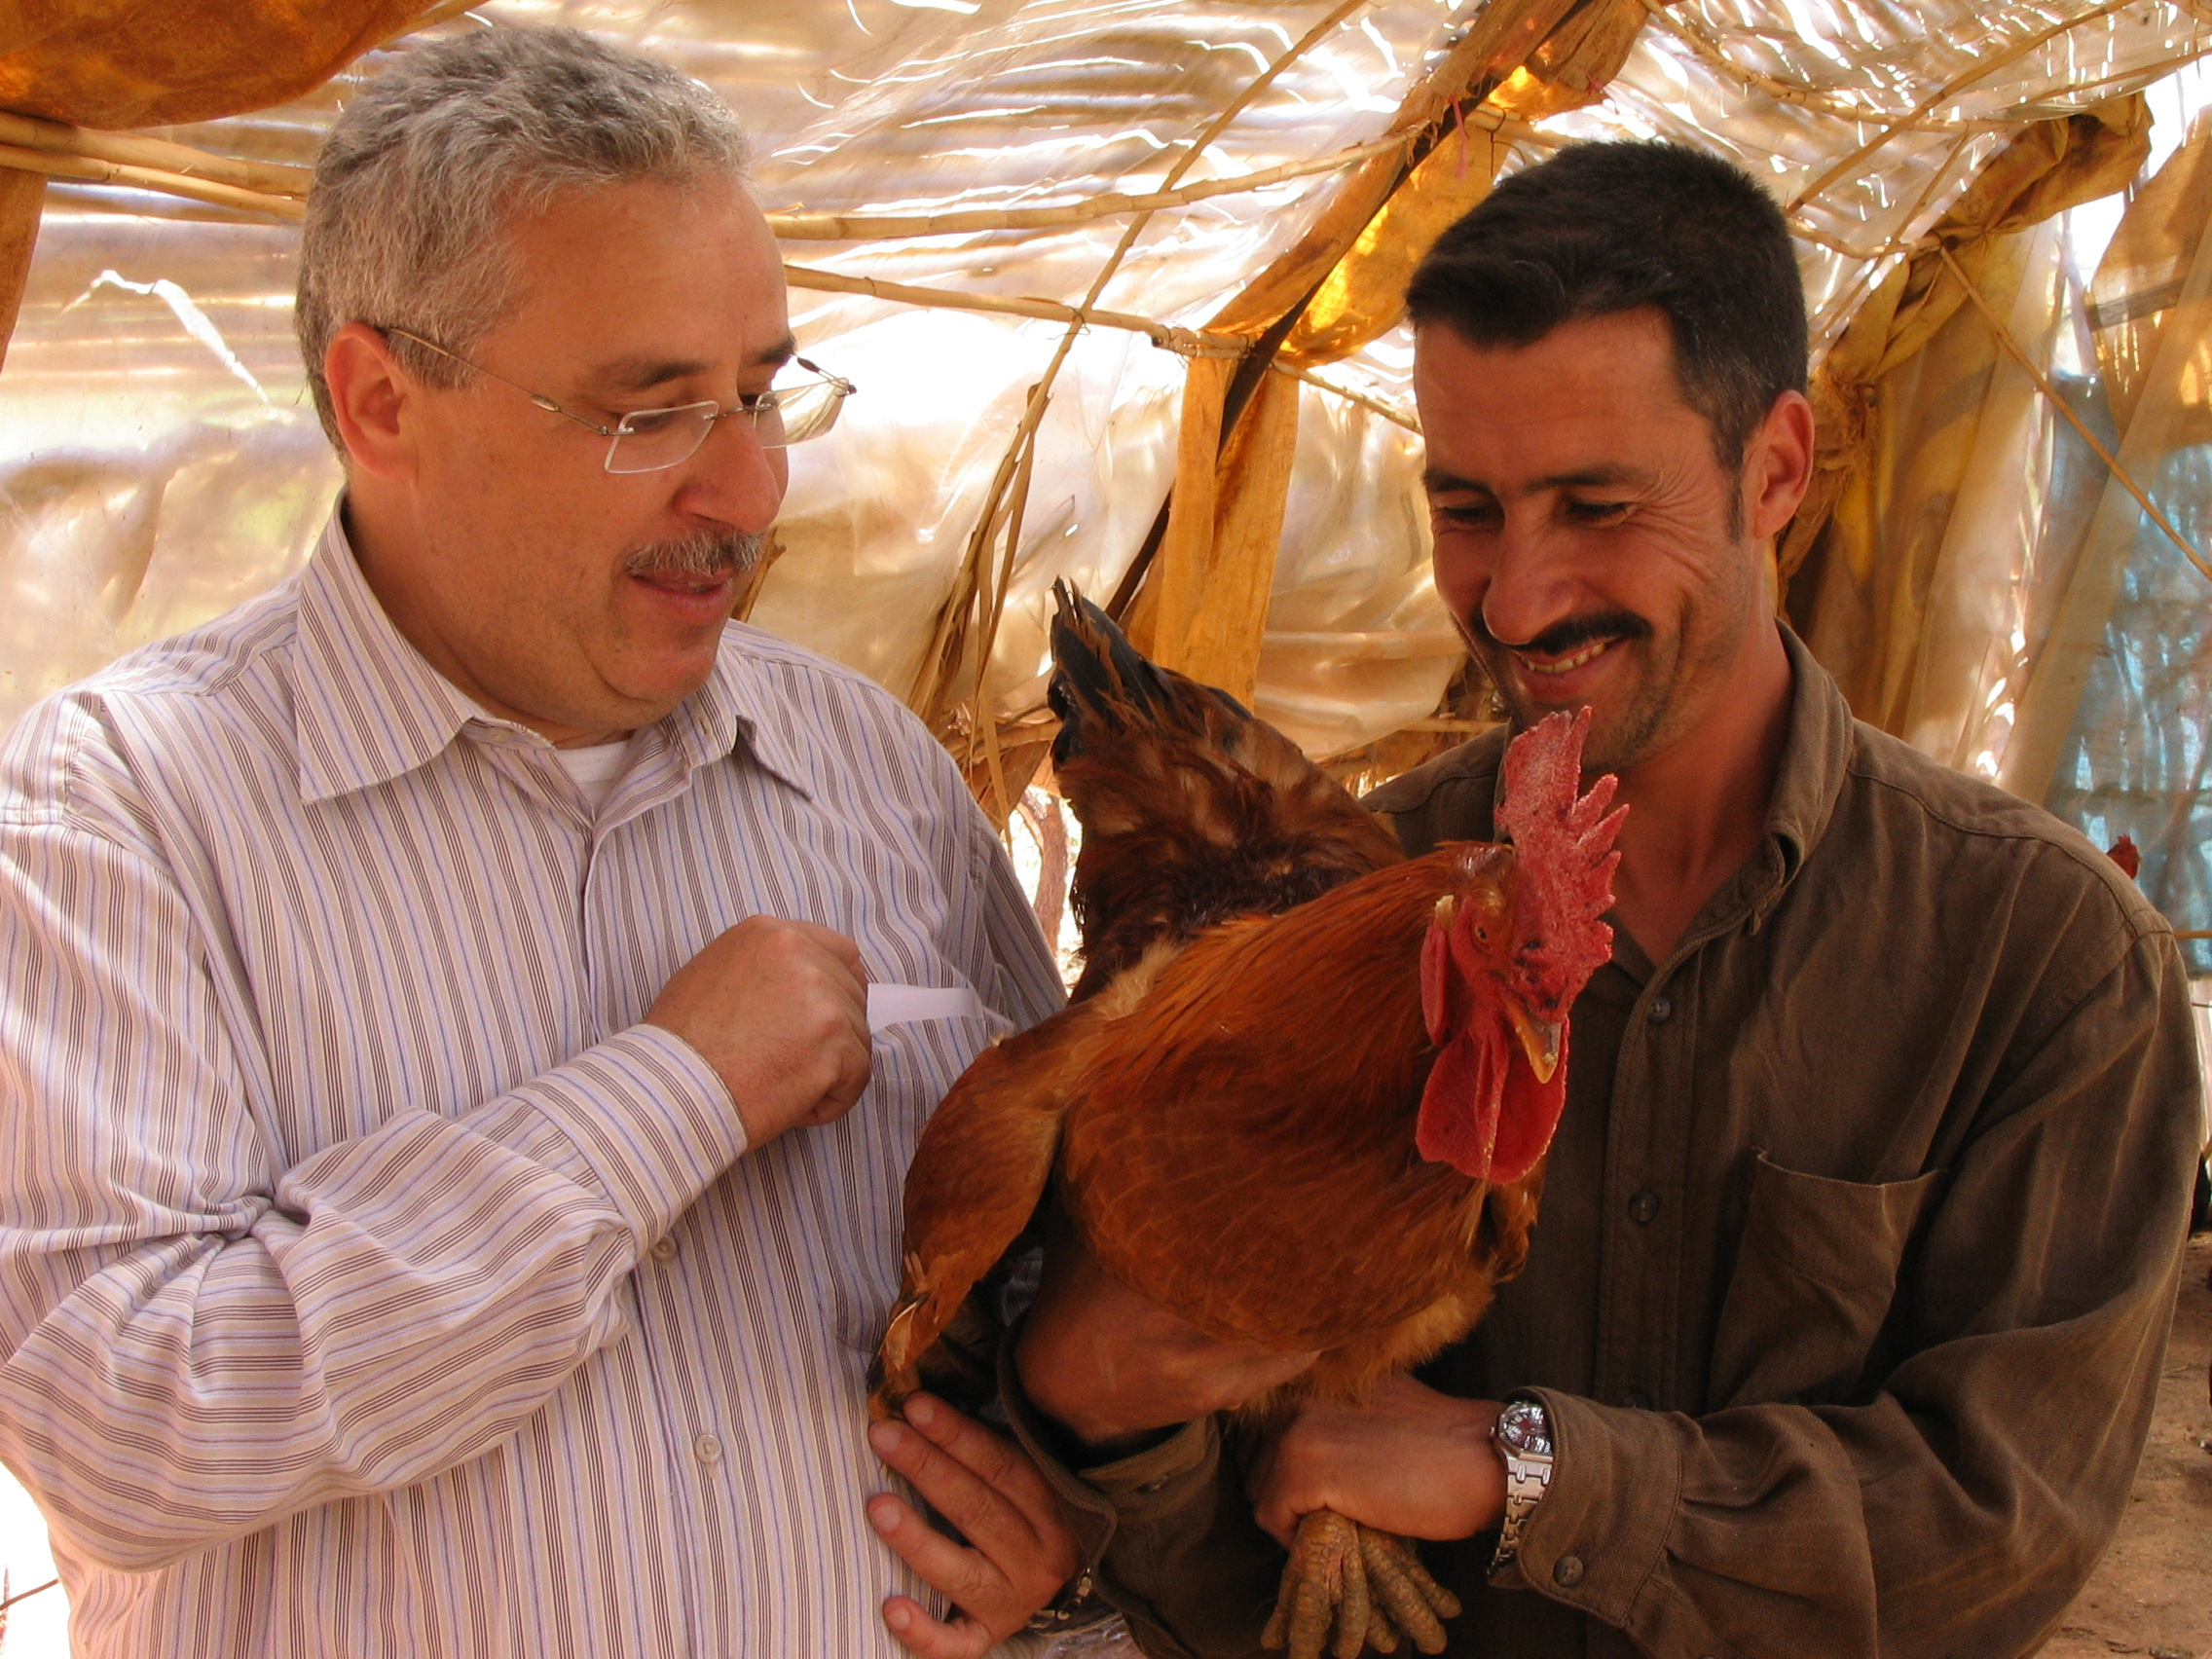 Two men holding a chicken